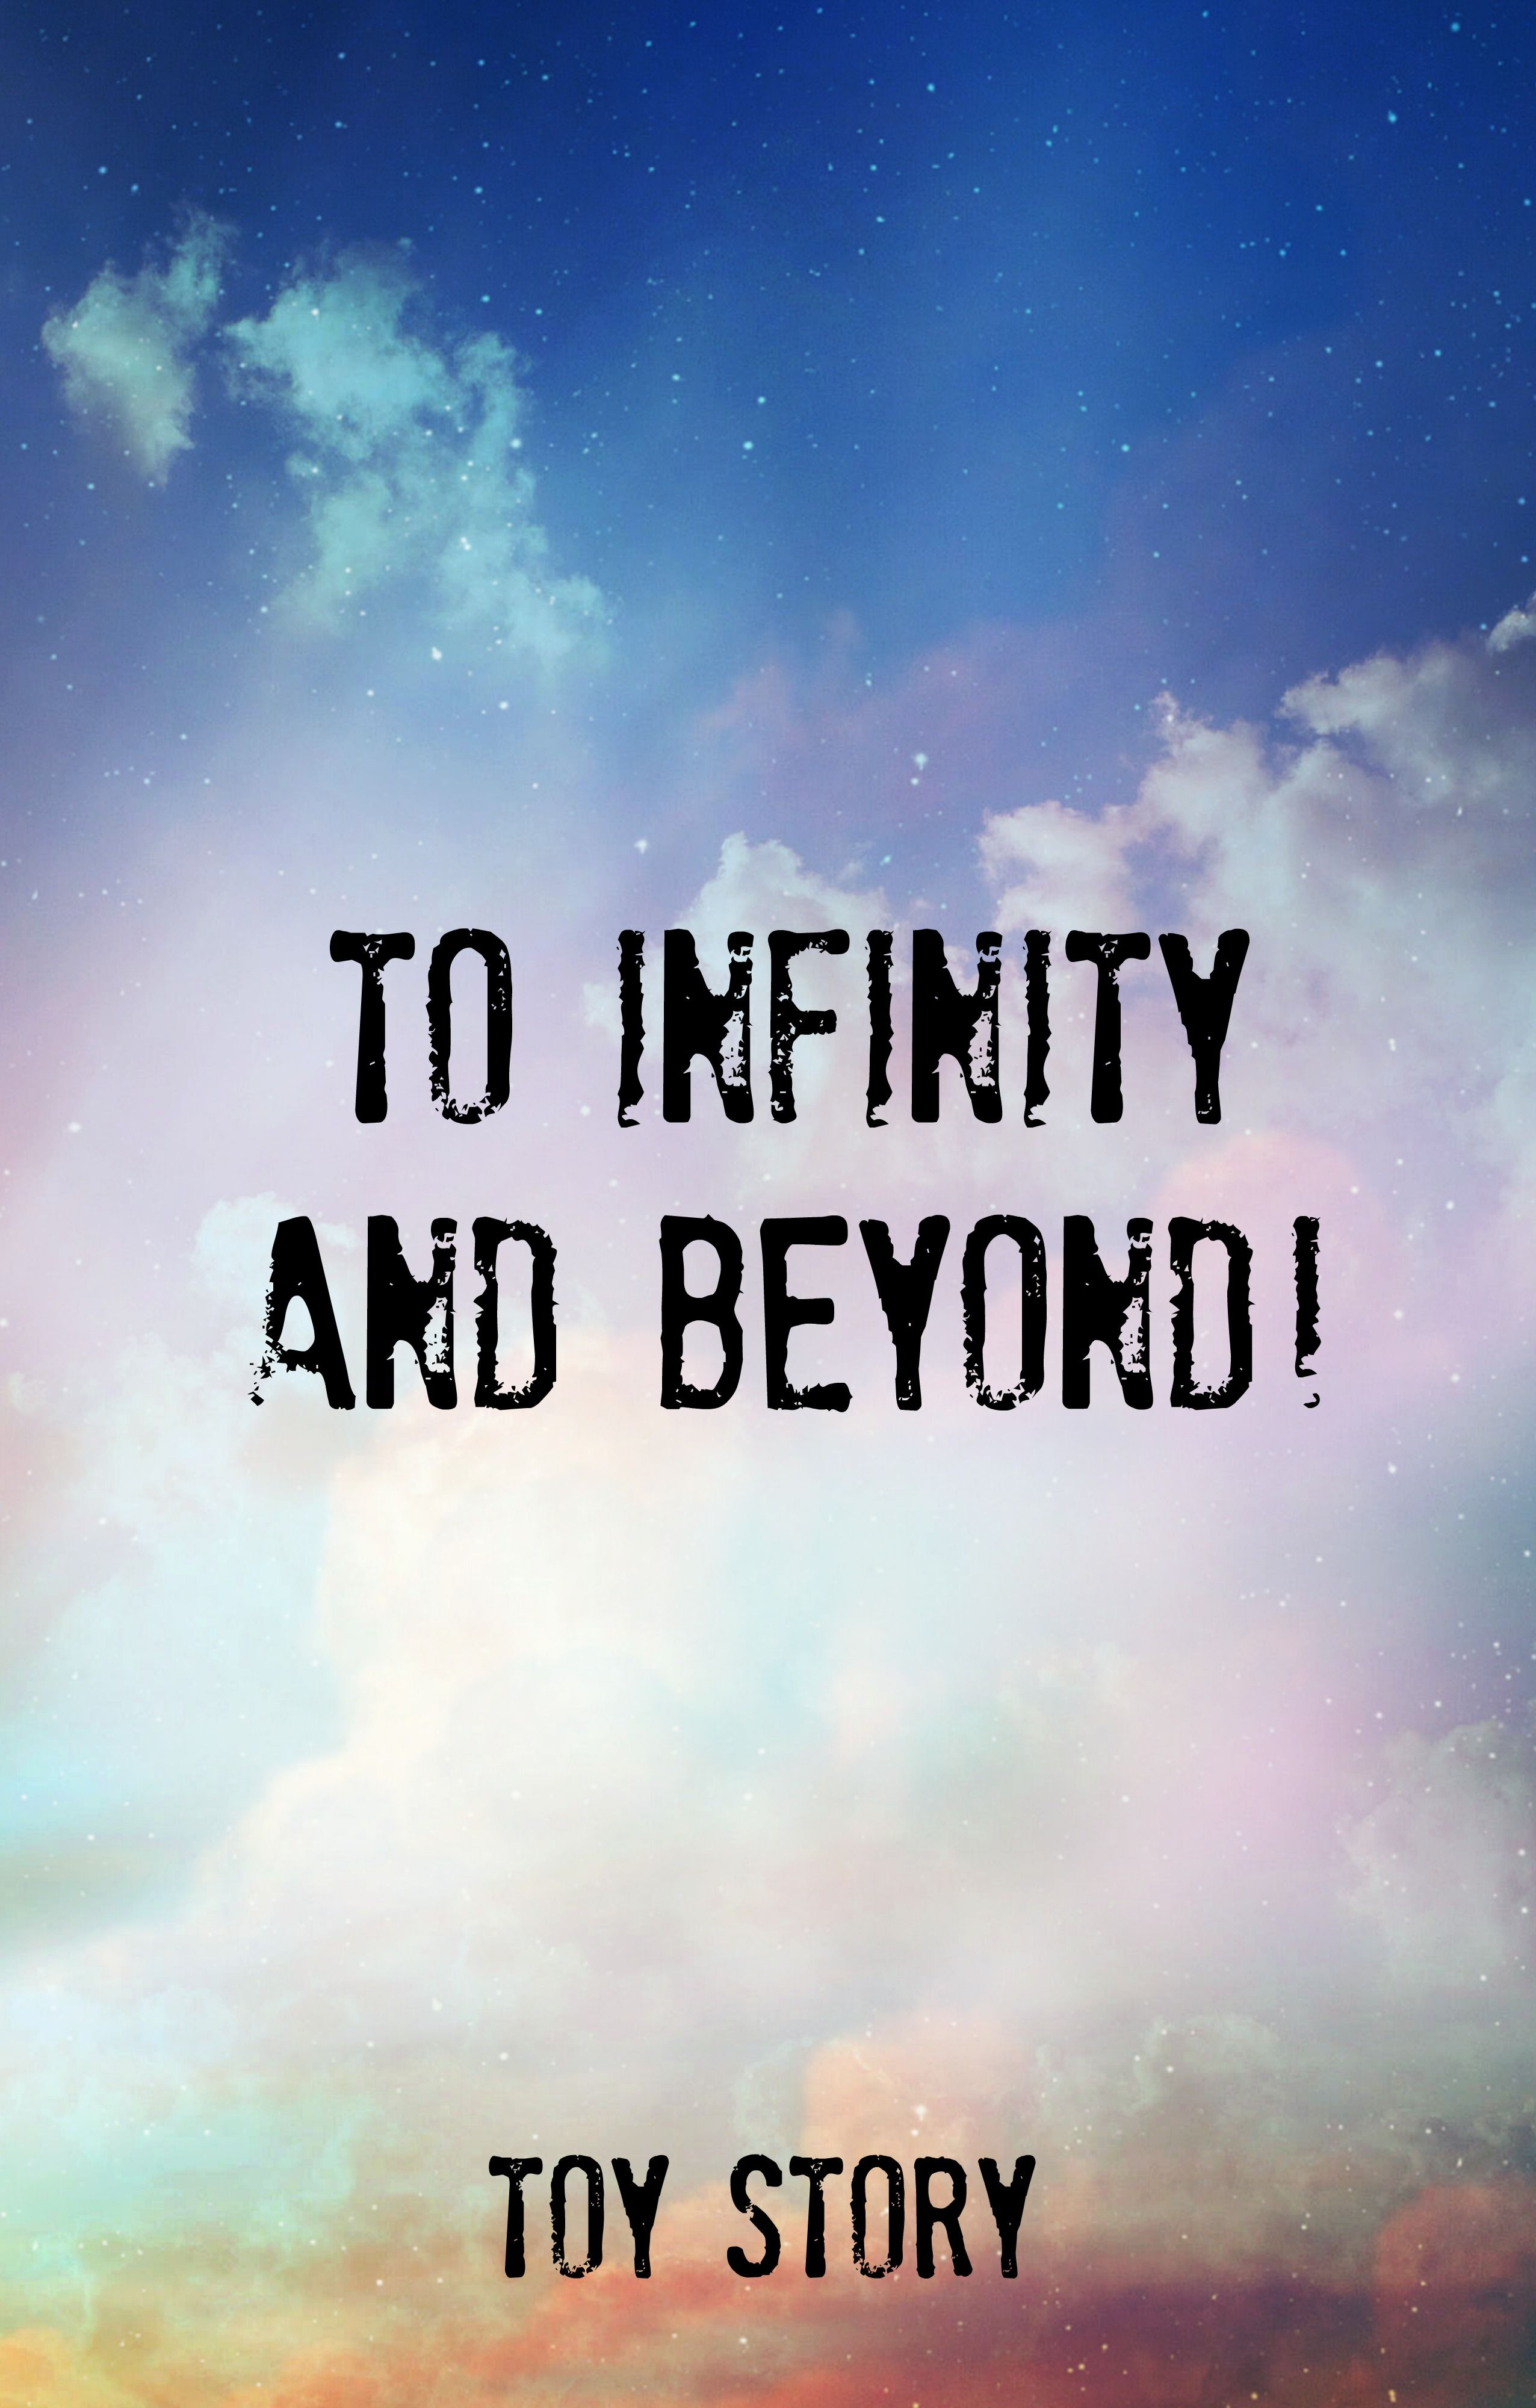 Toy Story Quotes To Infinity...and Beyond